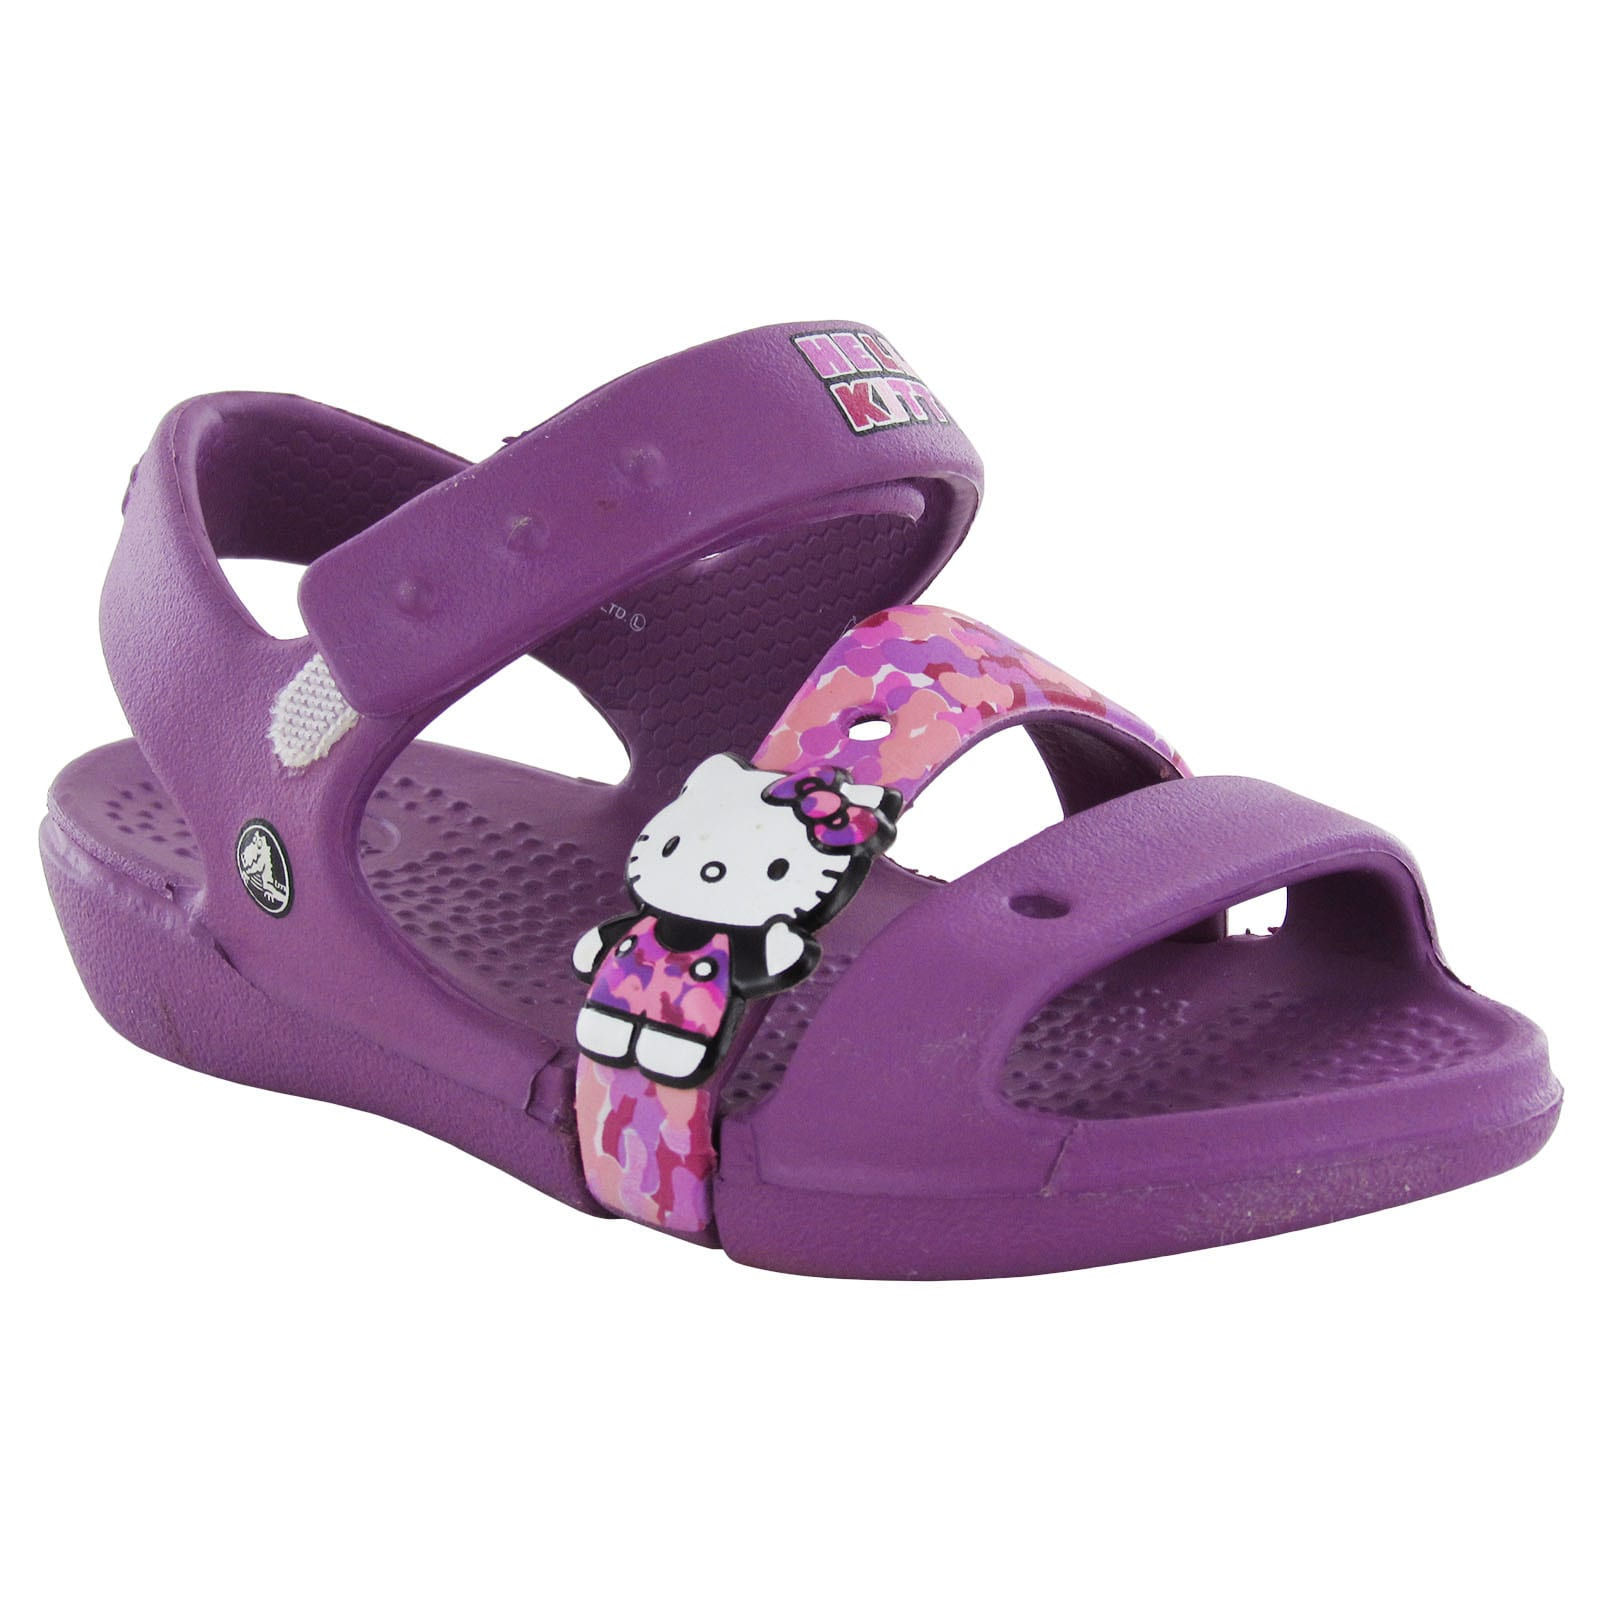 0078331c4903f8 Shop Crocs Girls Keeley Hello Kitty Camo Sandals - Free Shipping On ...